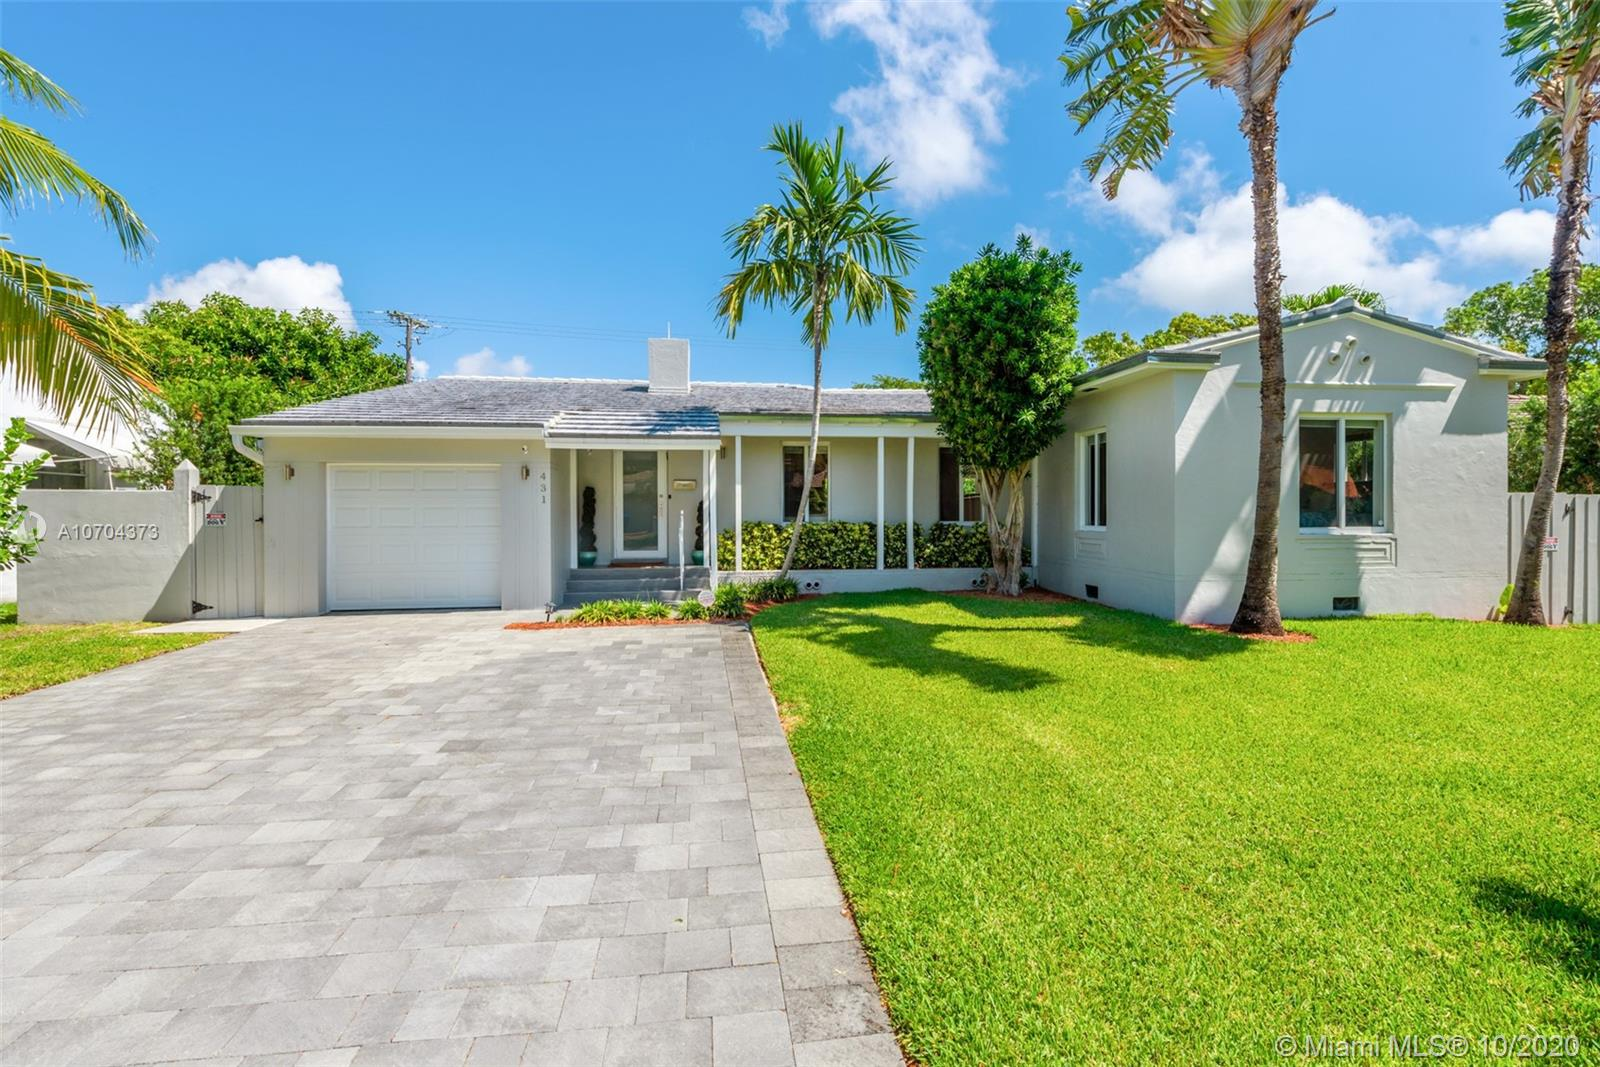 431 NE 53rd St, Miami, Florida 33137, 3 Bedrooms Bedrooms, ,3 BathroomsBathrooms,Residential,For Sale,431 NE 53rd St,A10704373